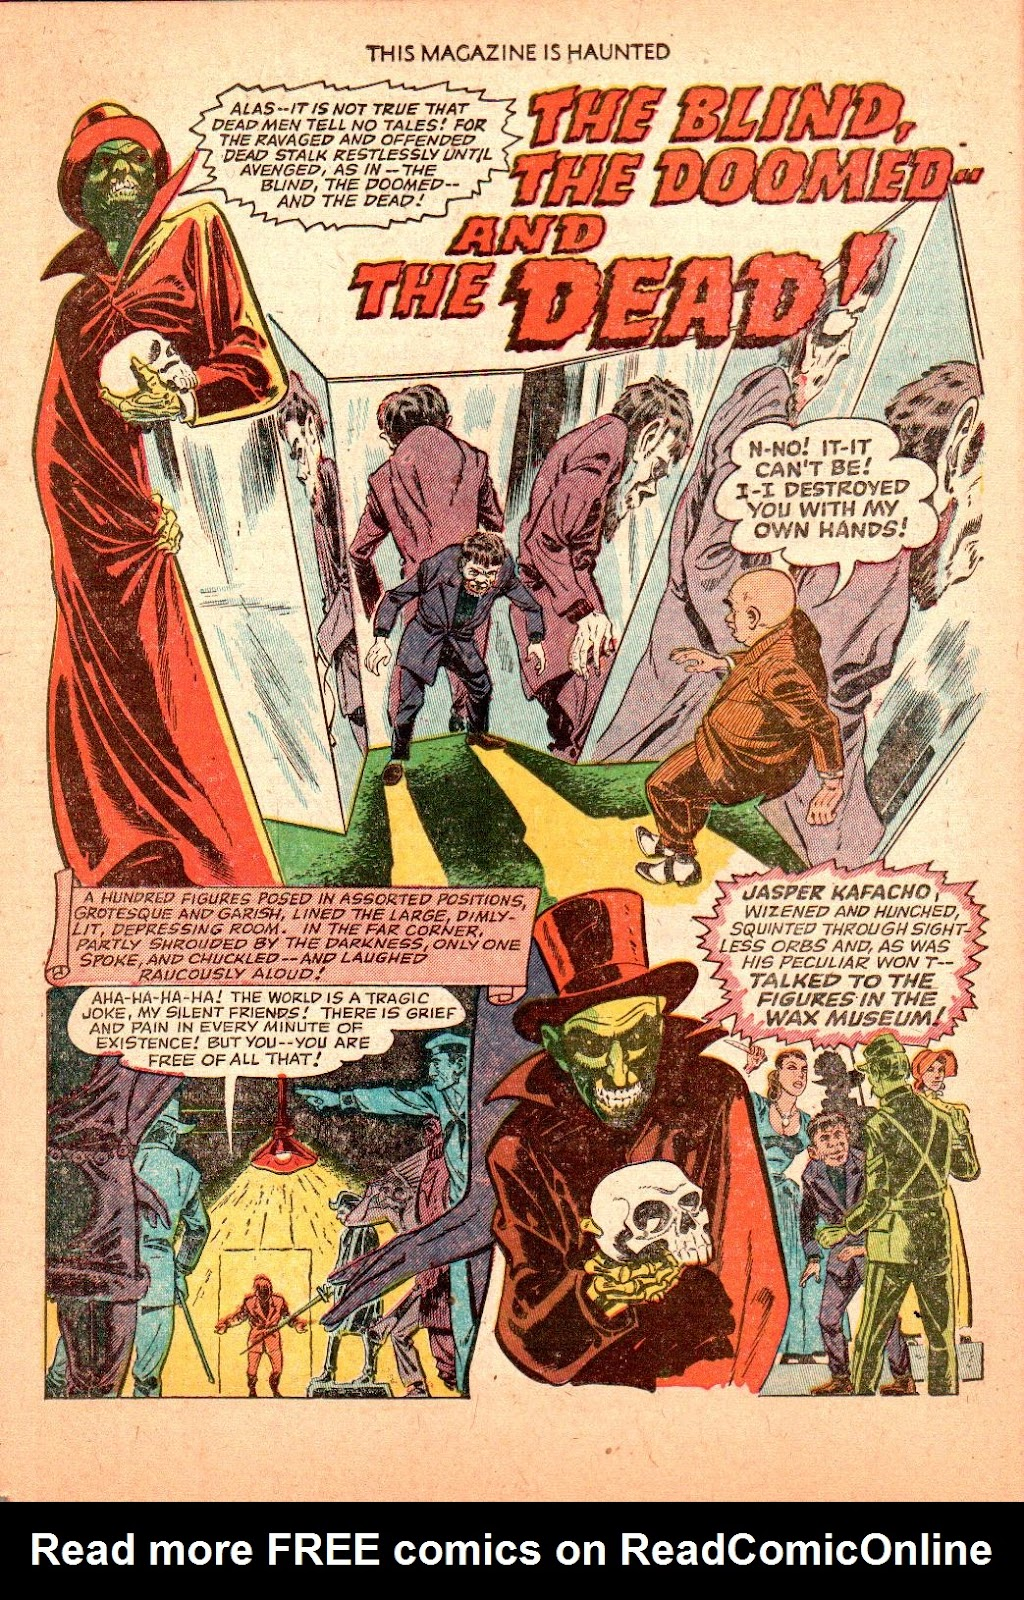 Read online This Magazine Is Haunted comic -  Issue #4 - 26